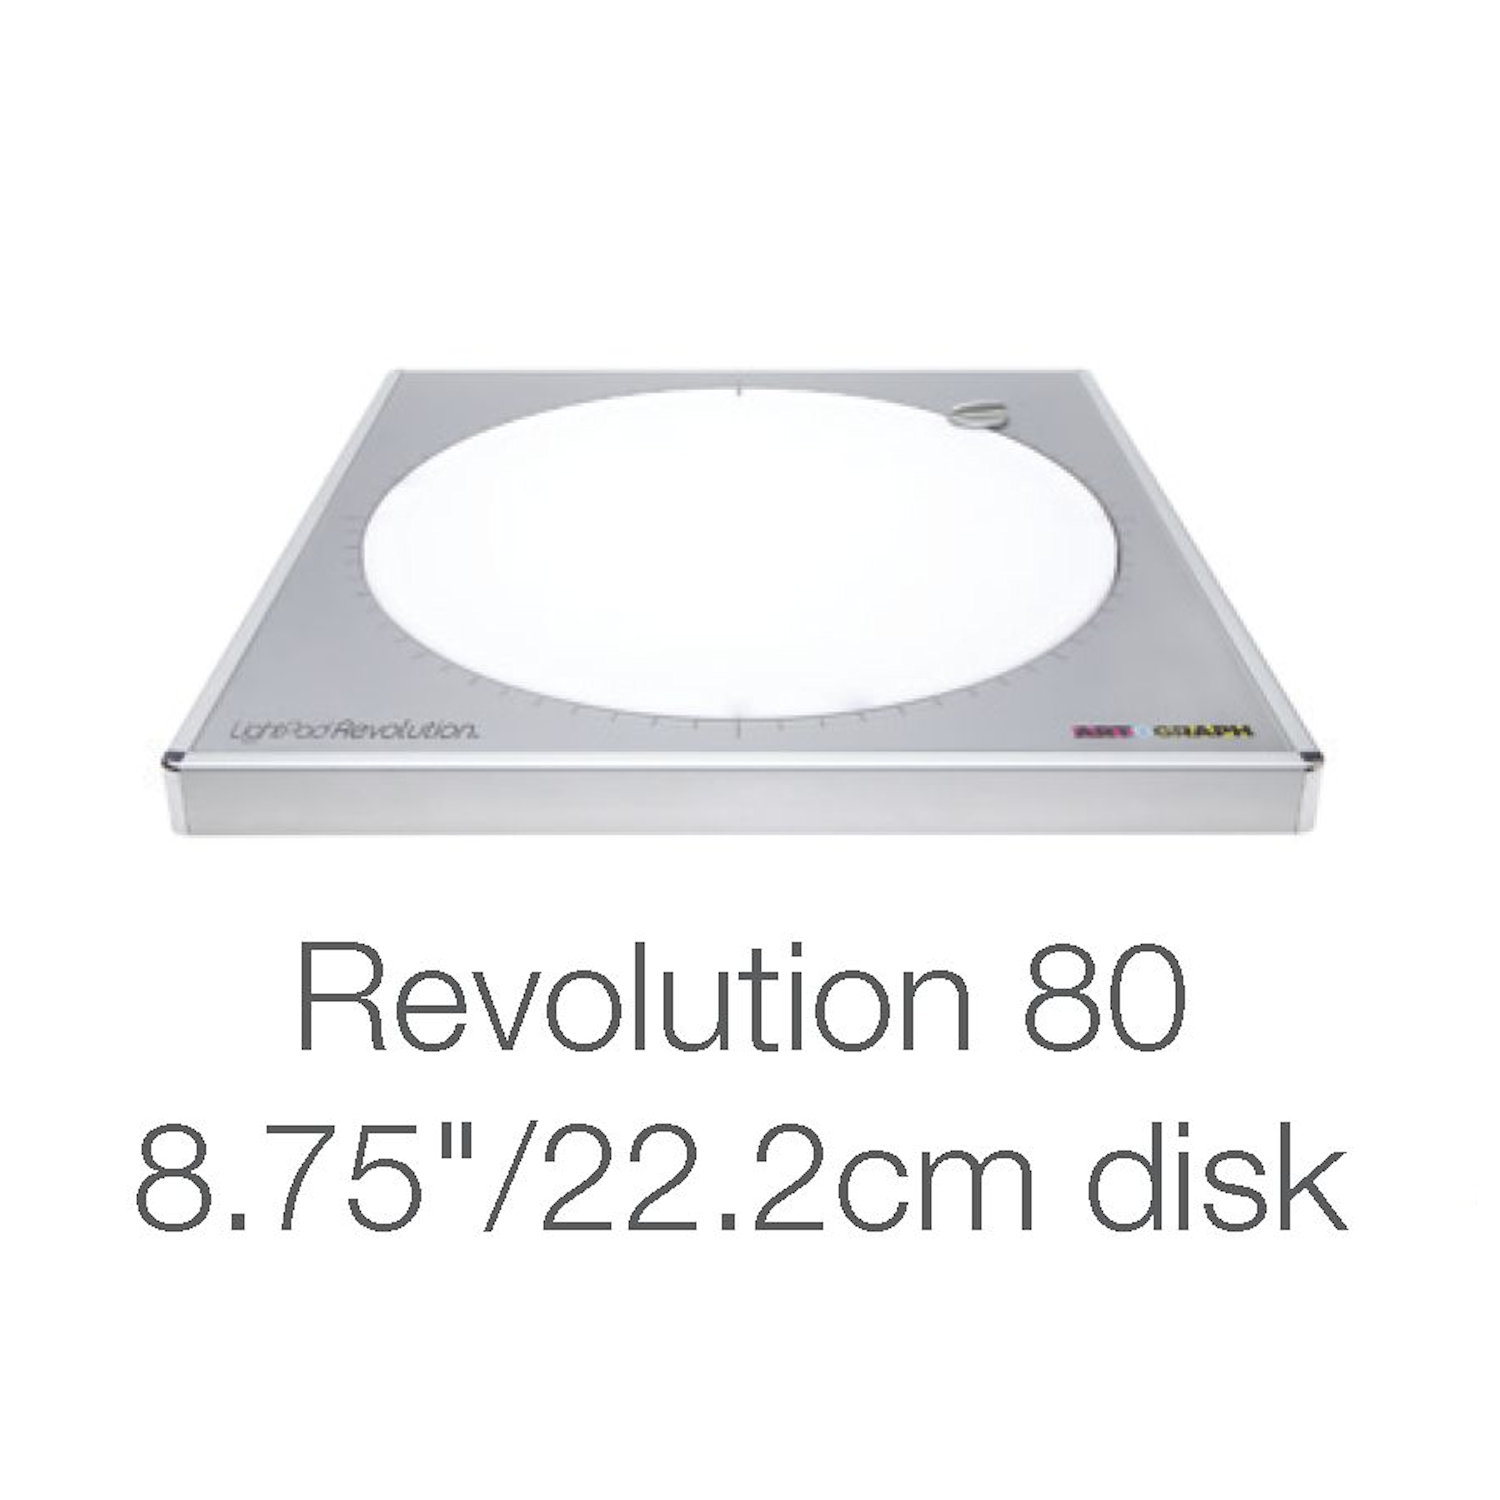 Artograph LightPad Revolution 80